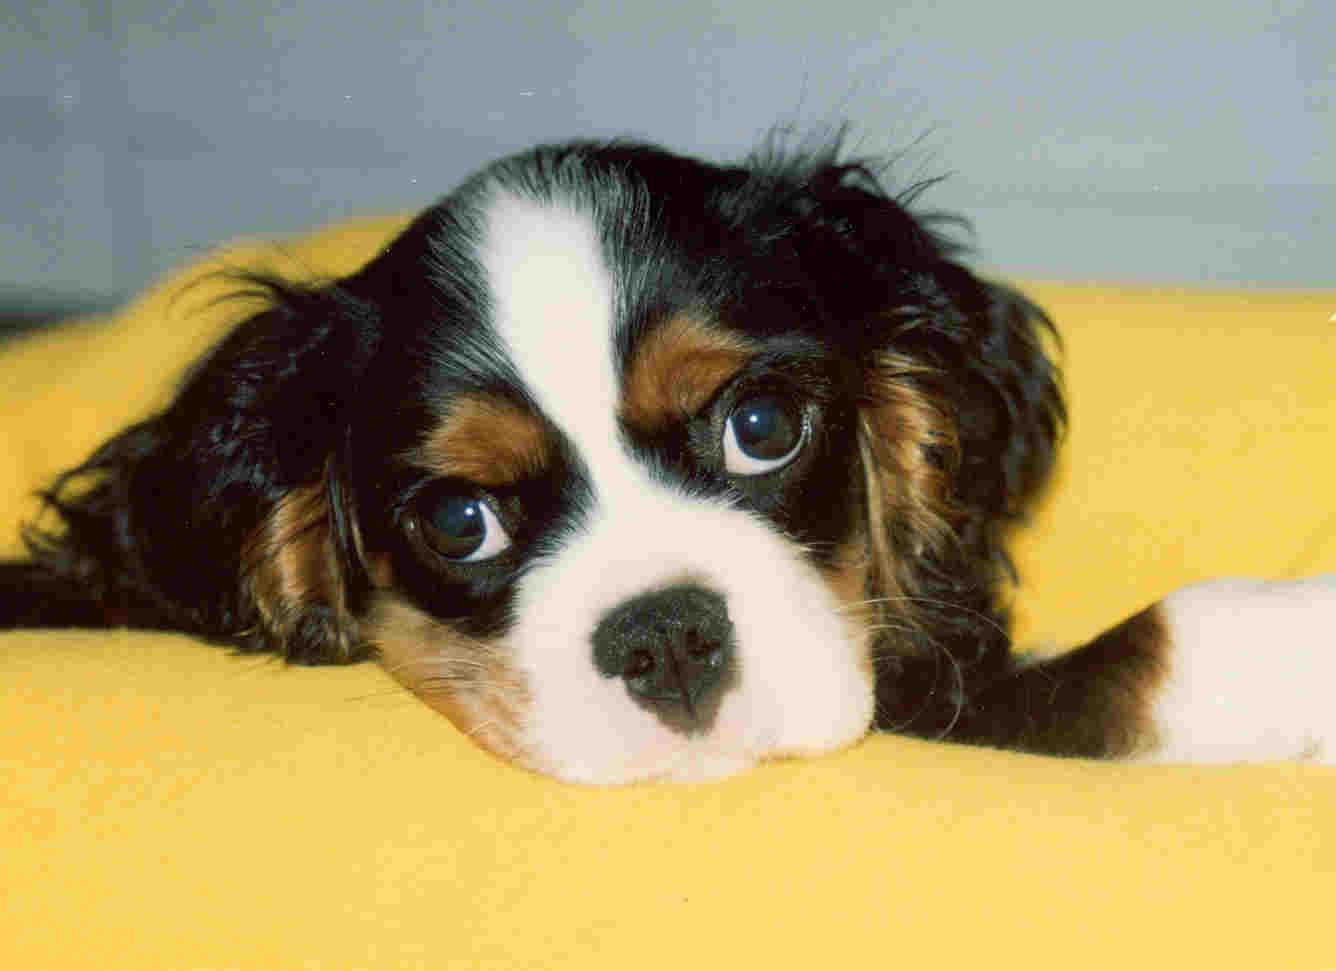 Cute Cavalier King Charles Spaniel dog wallpaper